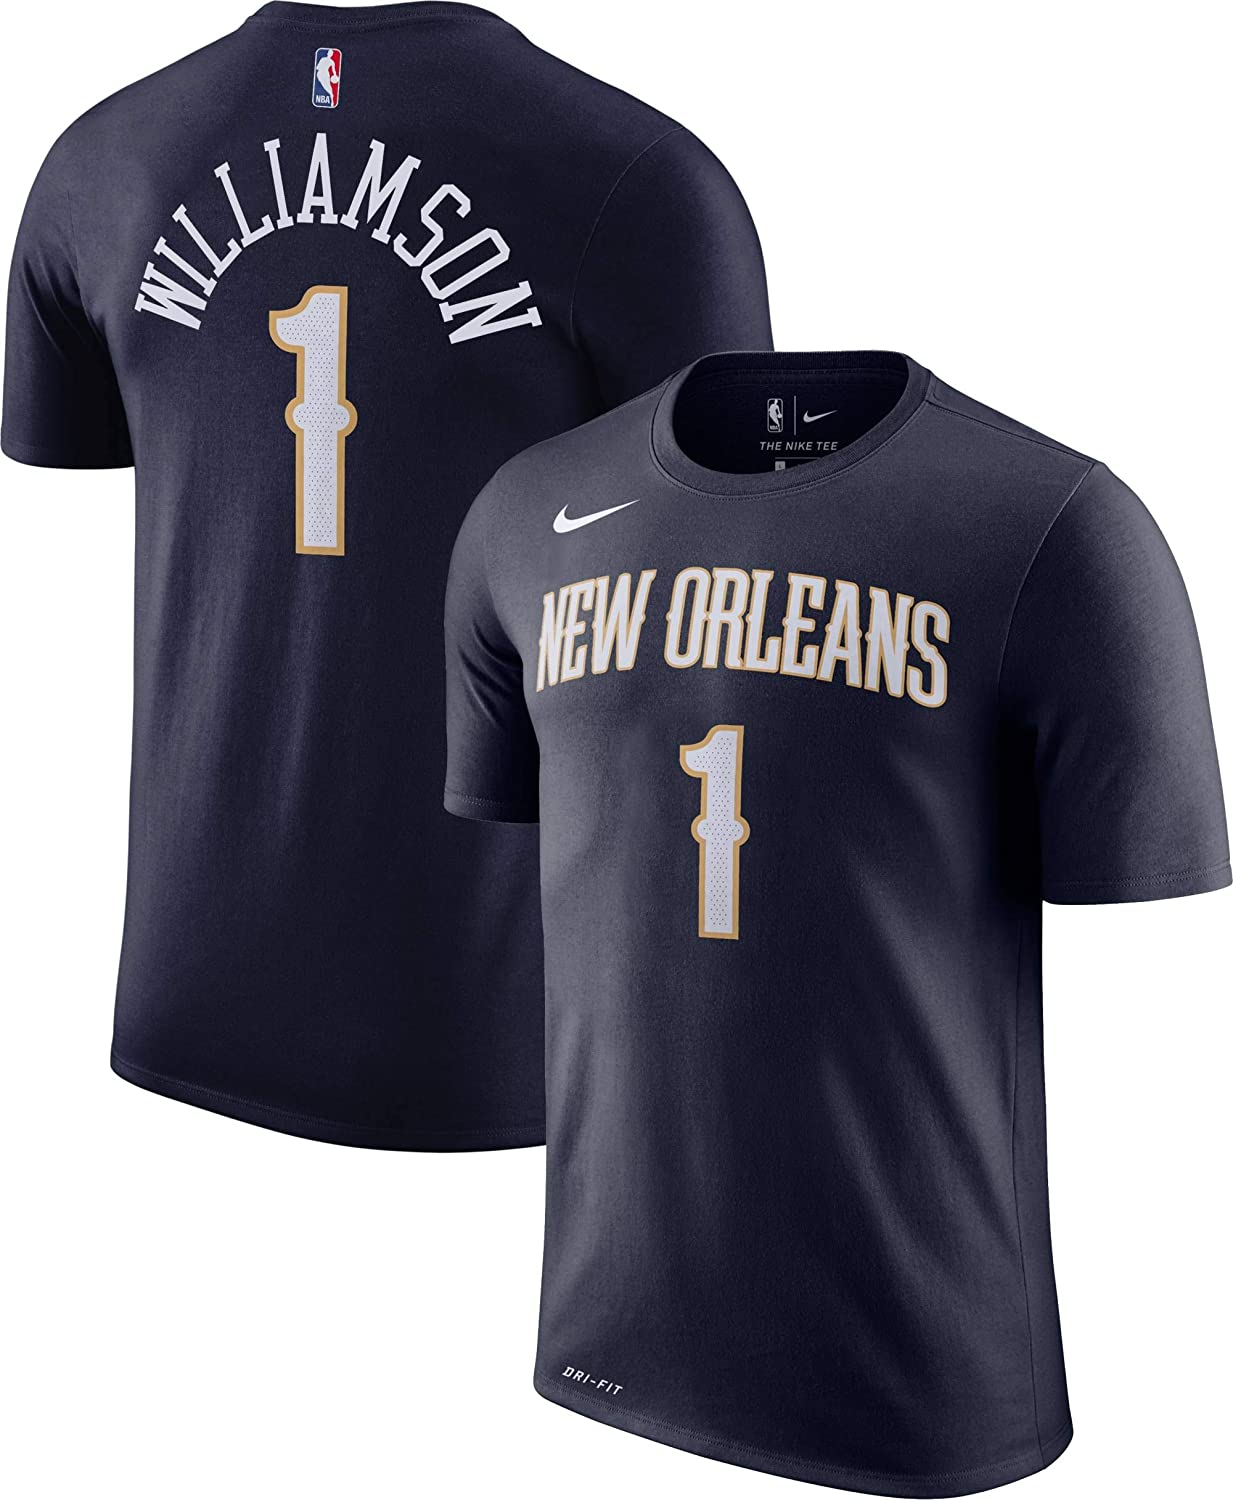 Nike Zion Williamson New Orleans Pelicans NBA Kids 4-7 Navy Icon Edition Player Name /& Number T-Shirt